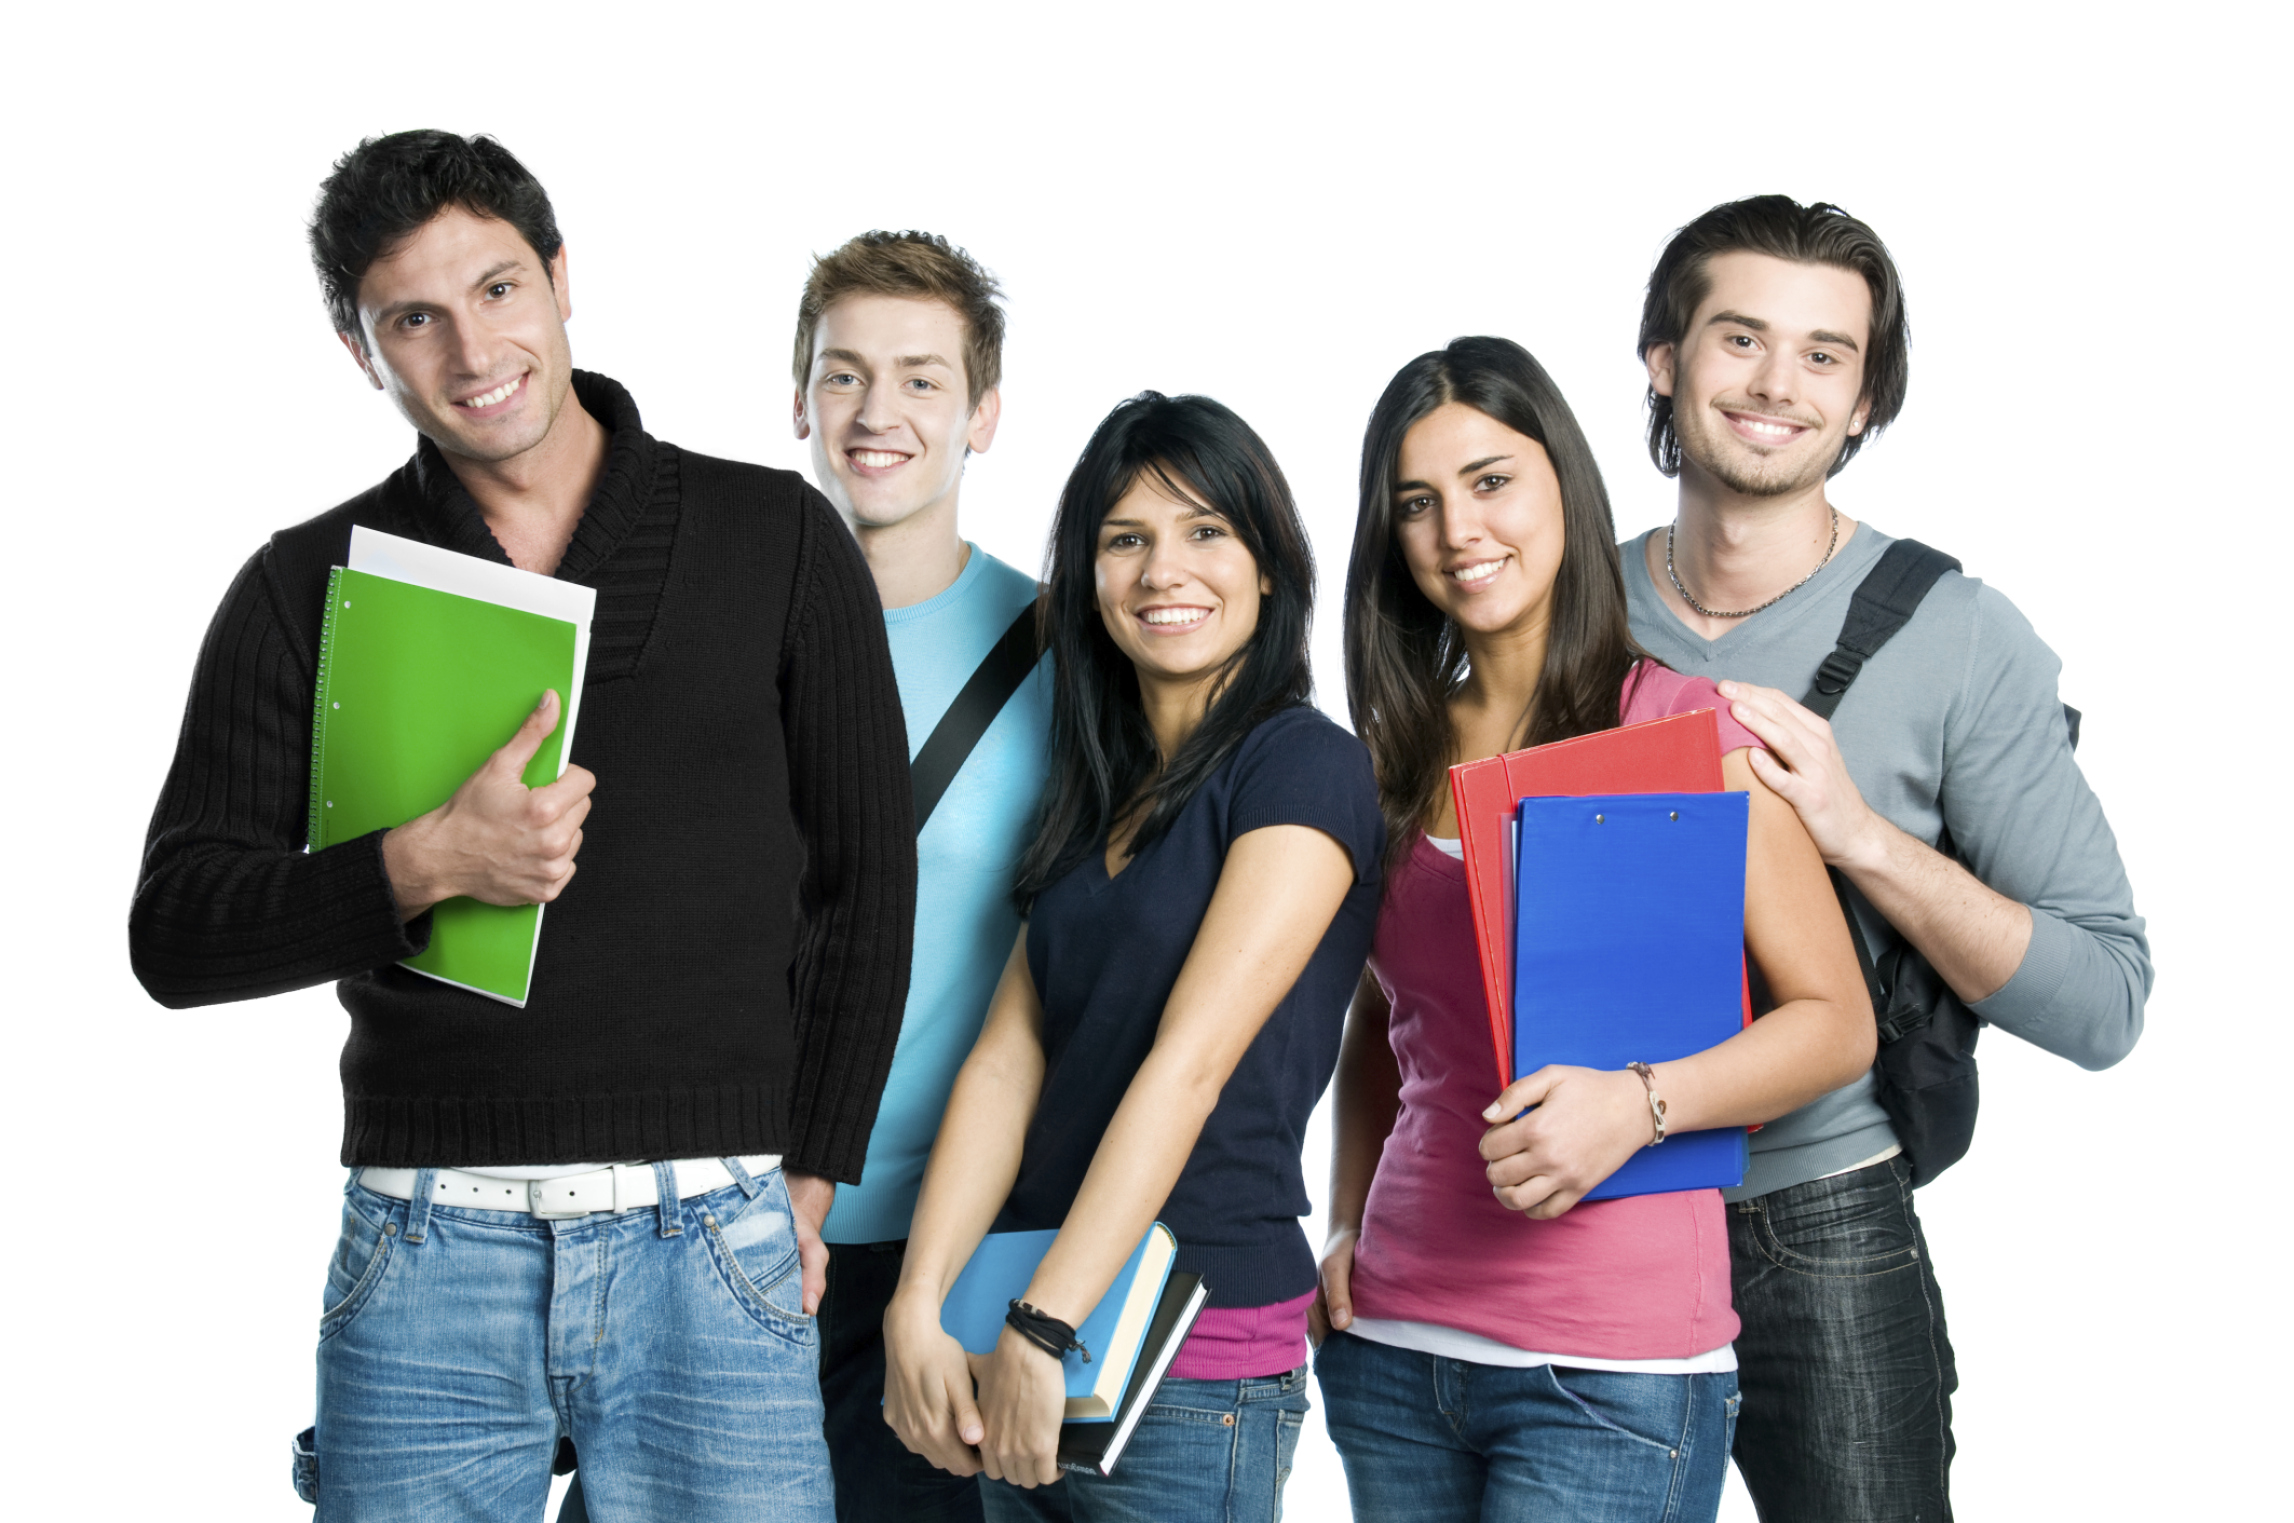 assessment and students Welcome to the fsa portal this portal is your source for information about the florida standards assessments florida's k-12 assessment system measures students' achievement of florida's education standards, which were developed and implemented to ensure that all students graduate from high school ready for success in college.